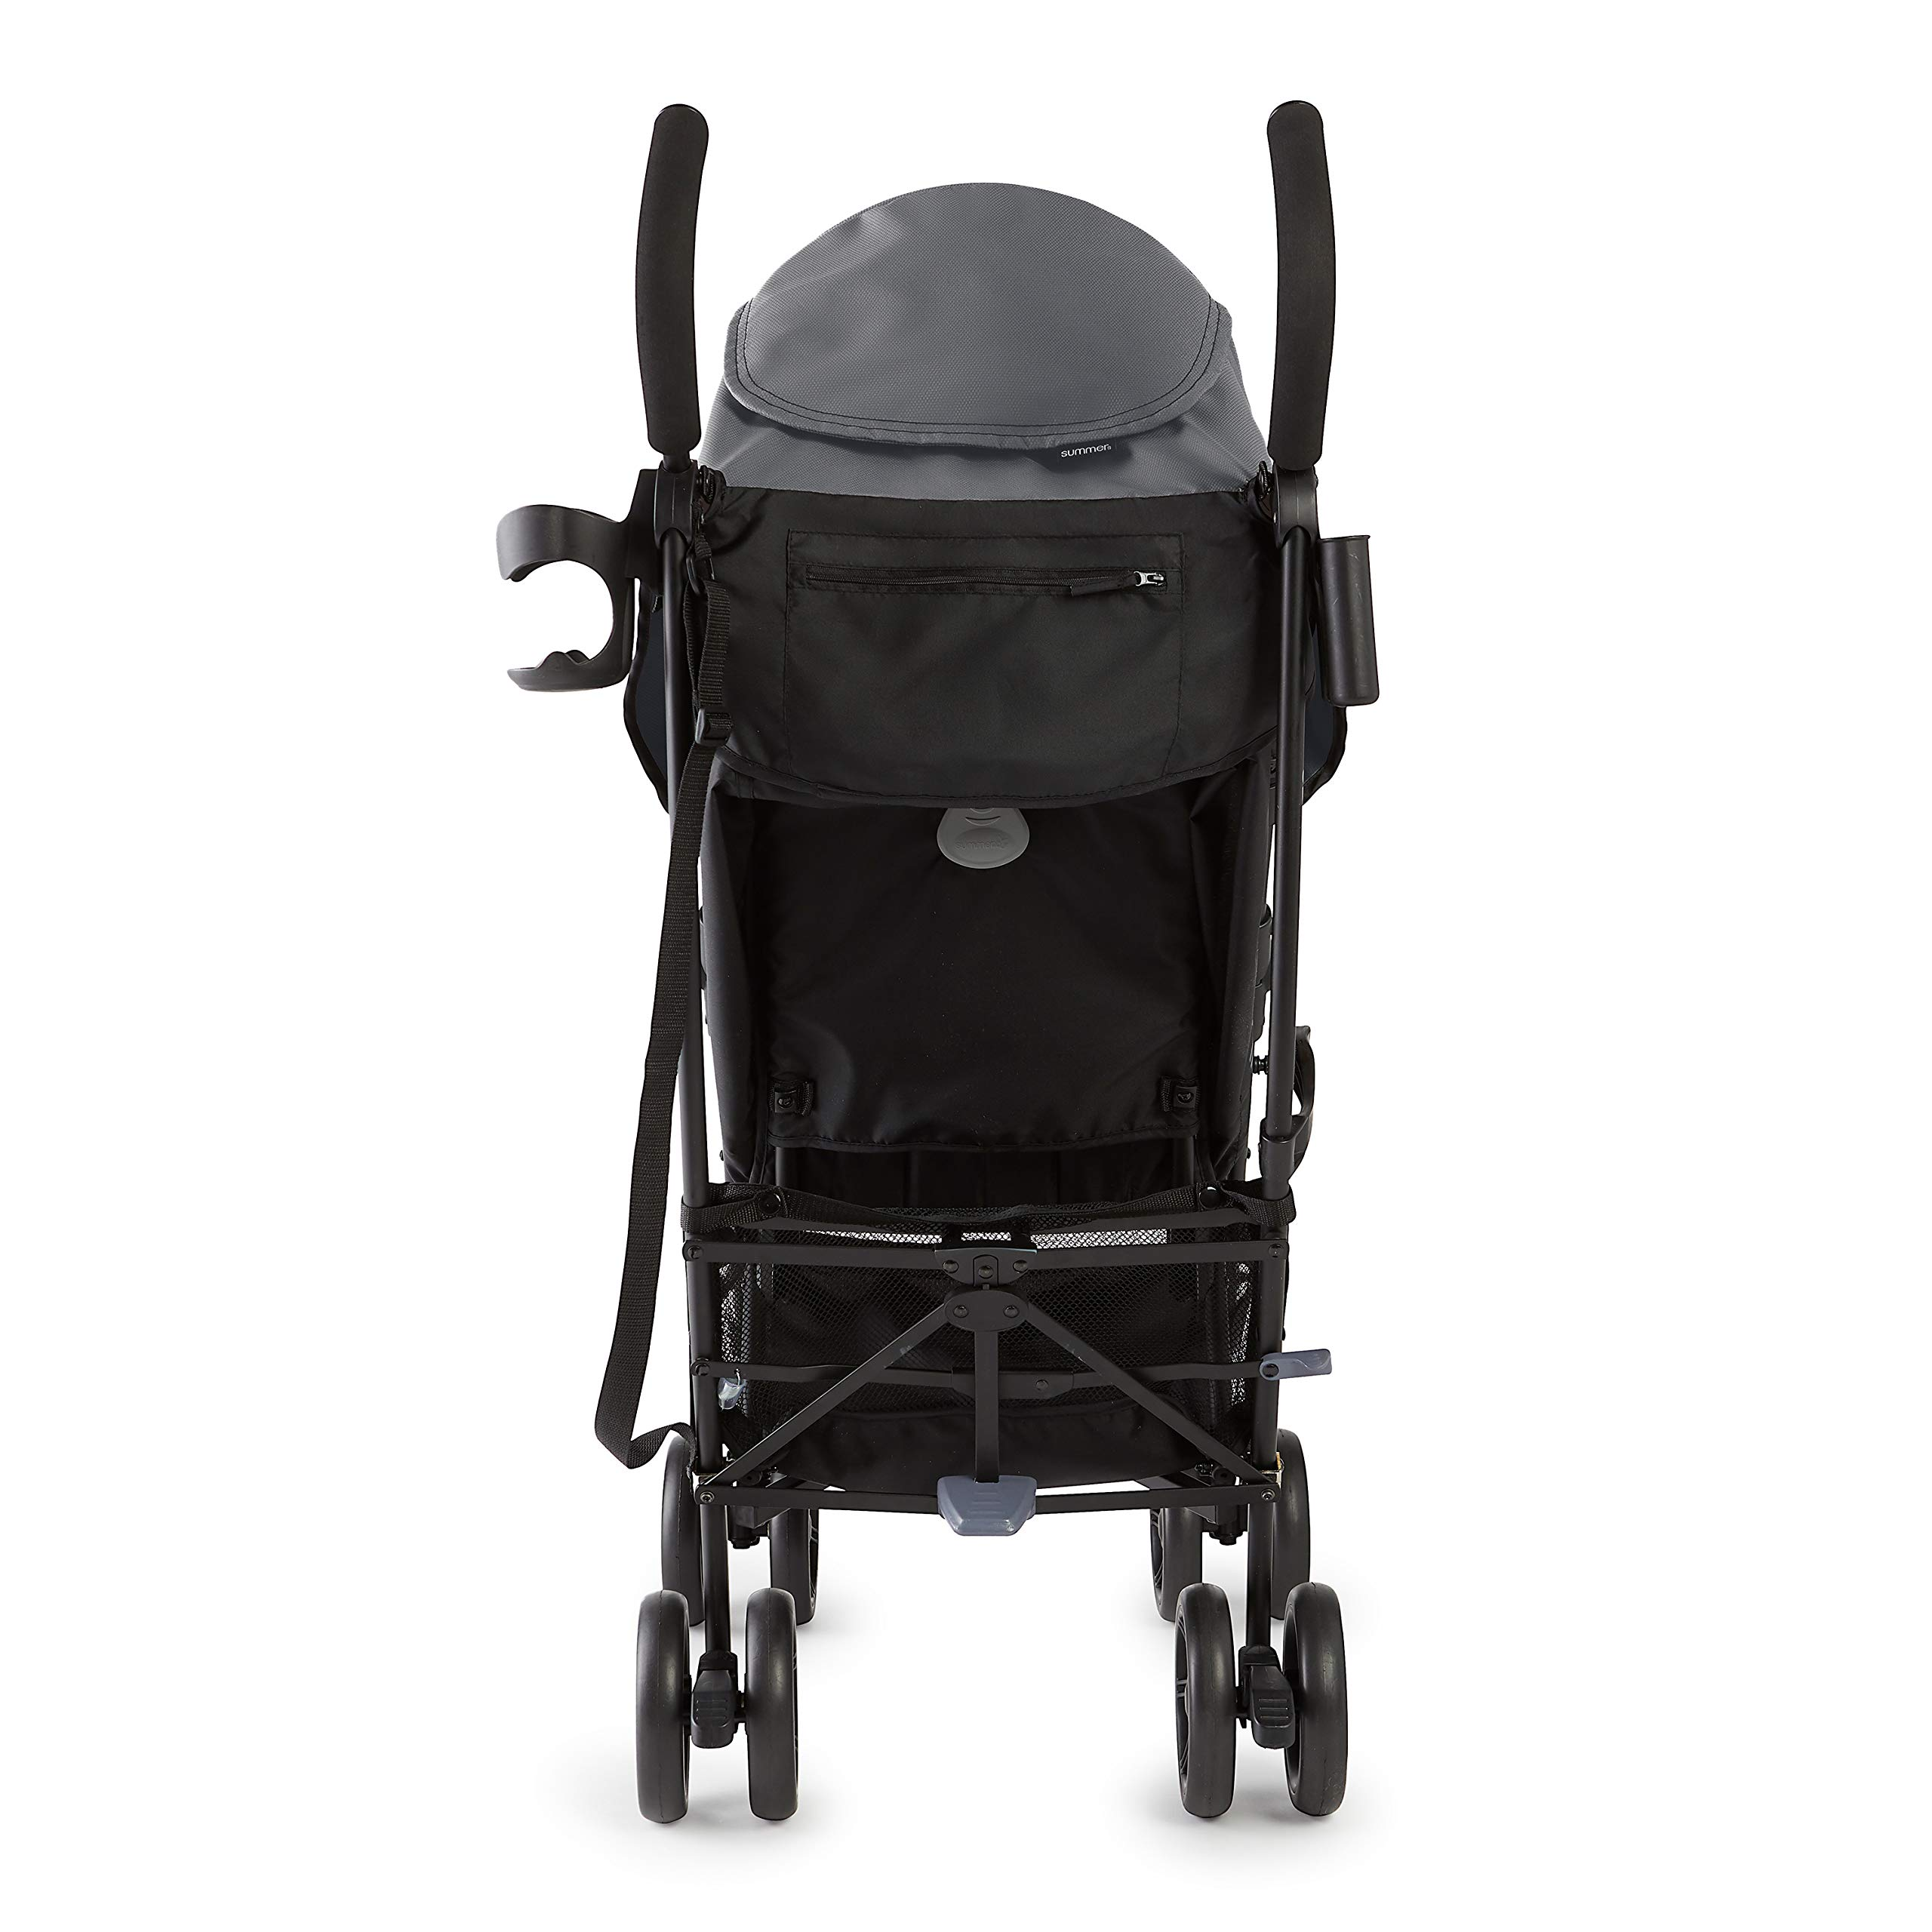 Summer 3Dlite+ Convenience Stroller, Matte Gray - Lightweight Umbrella Stroller with Oversized Canopy, Extra-Large Storage and Compact Fold by Summer Infant (Image #2)